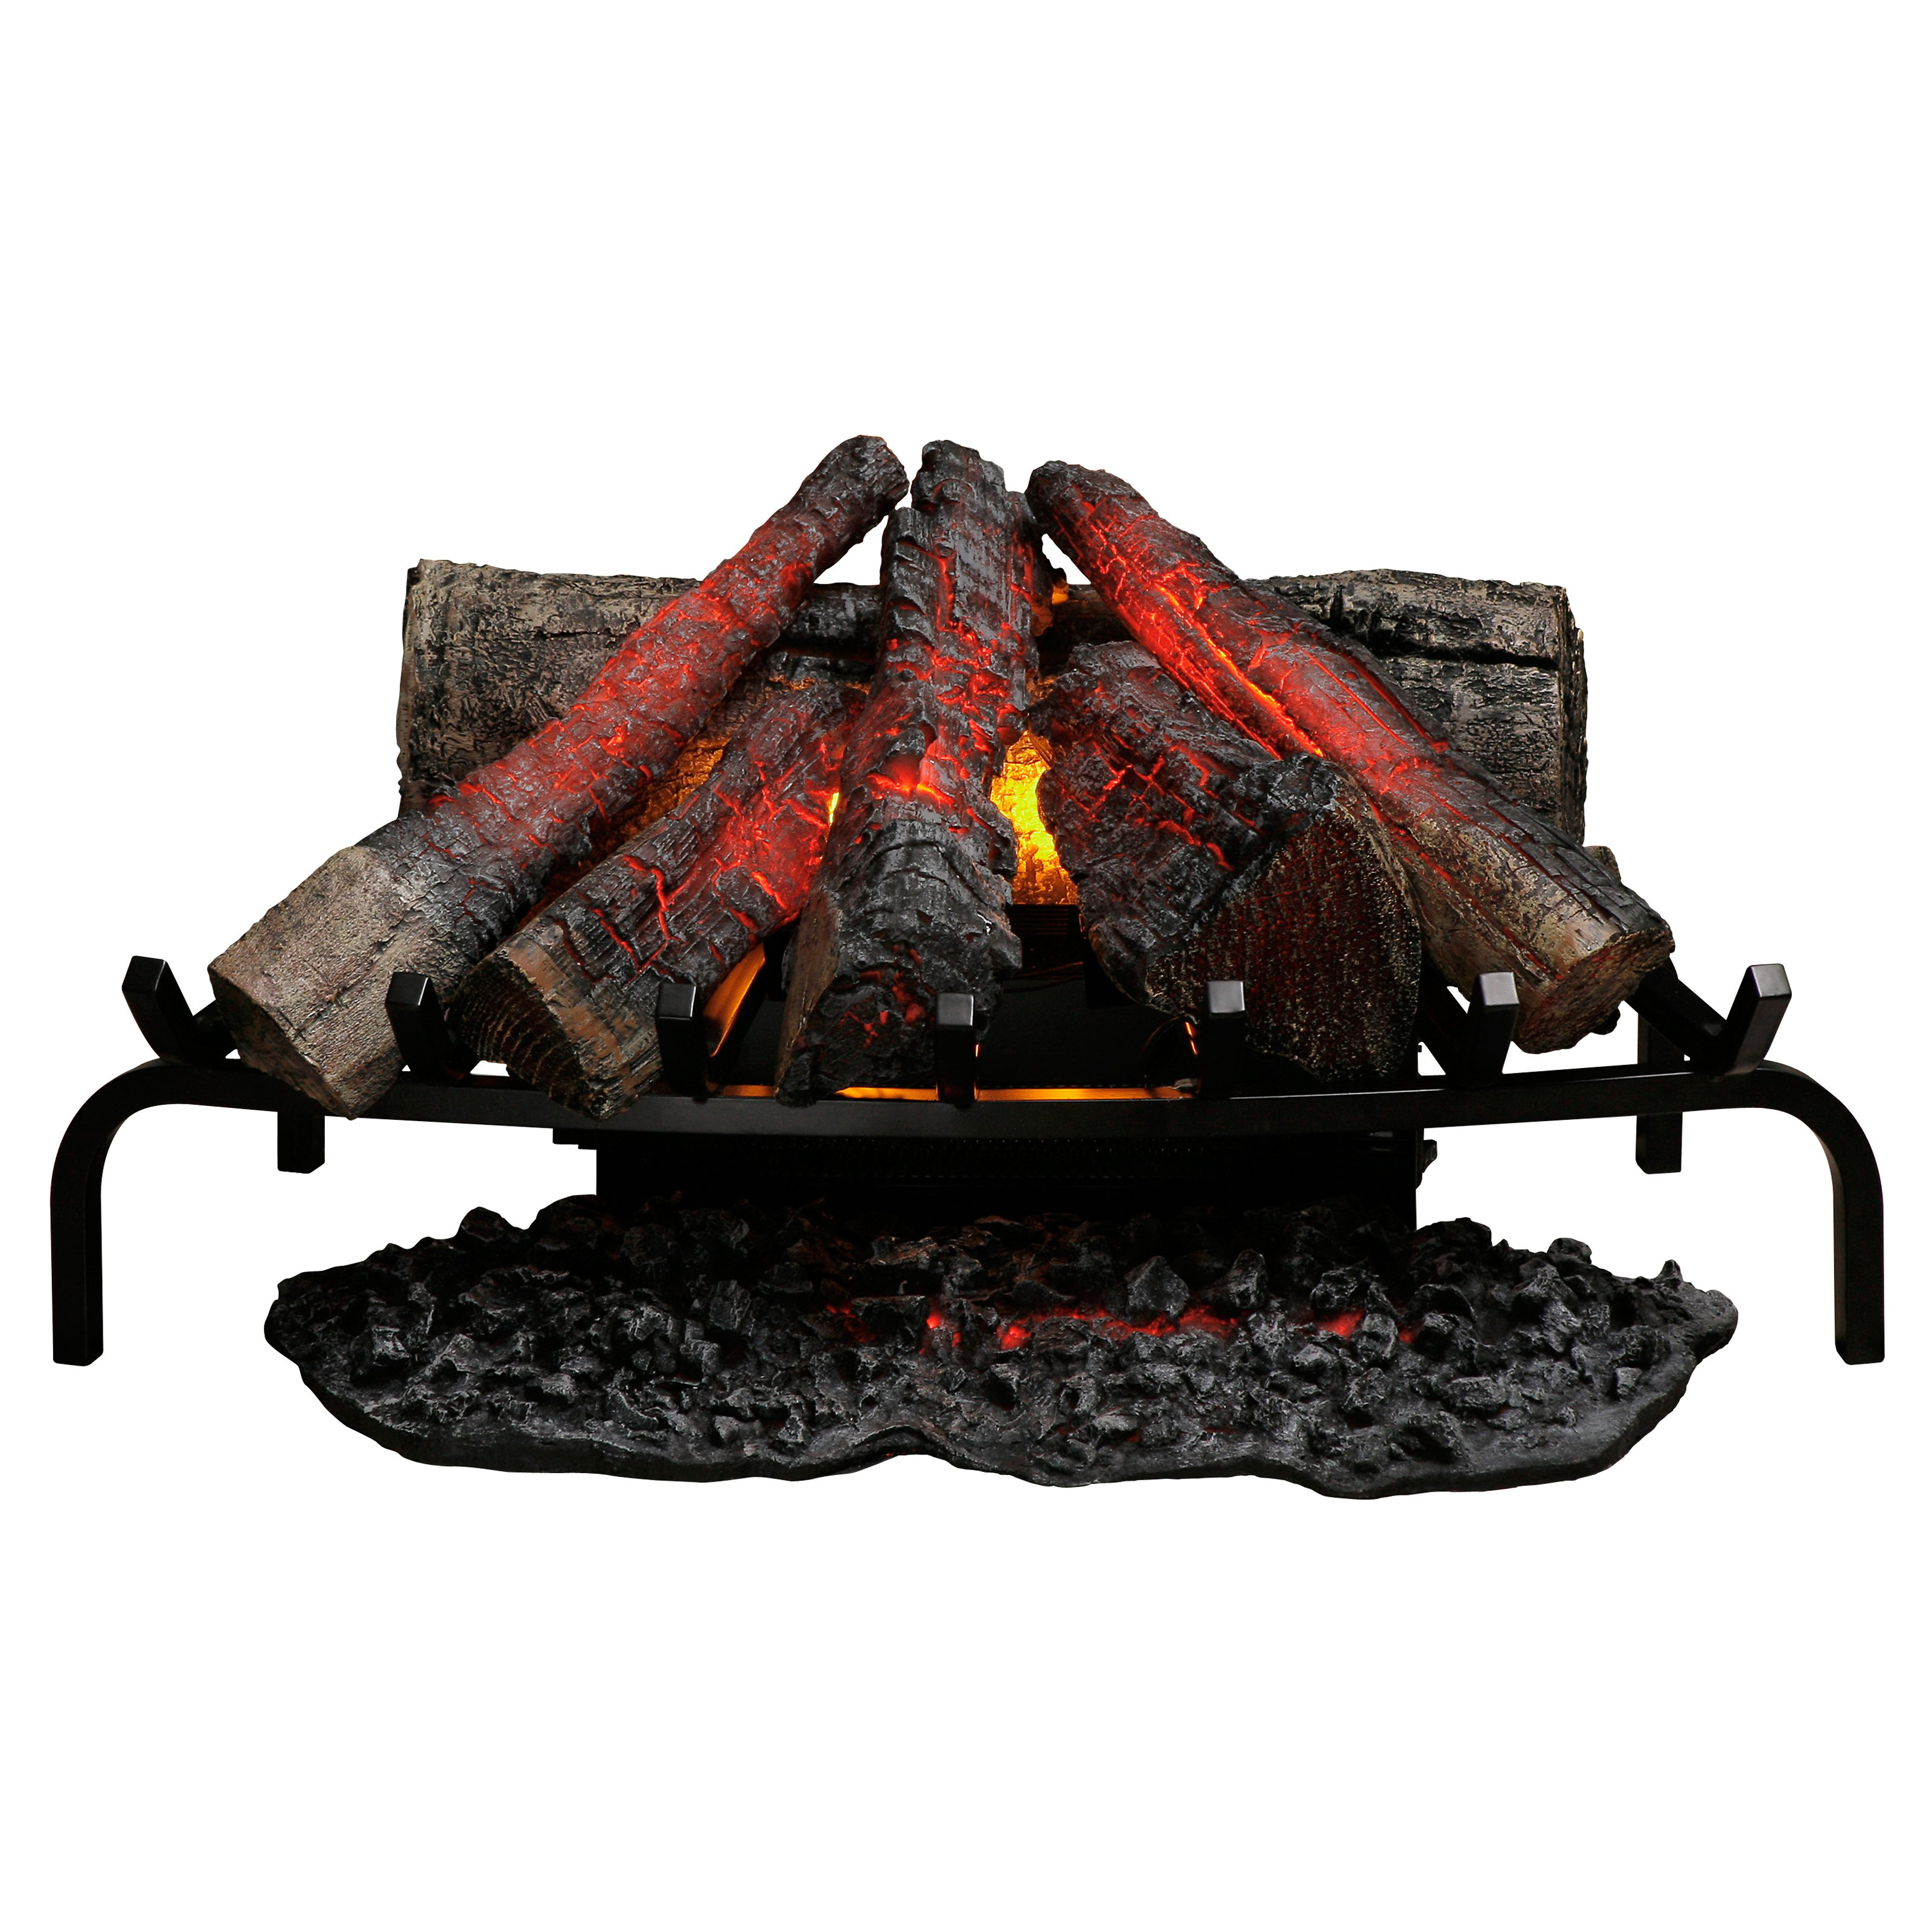 Dimplex 28 in. Open Hearth Electric Fireplace Insert